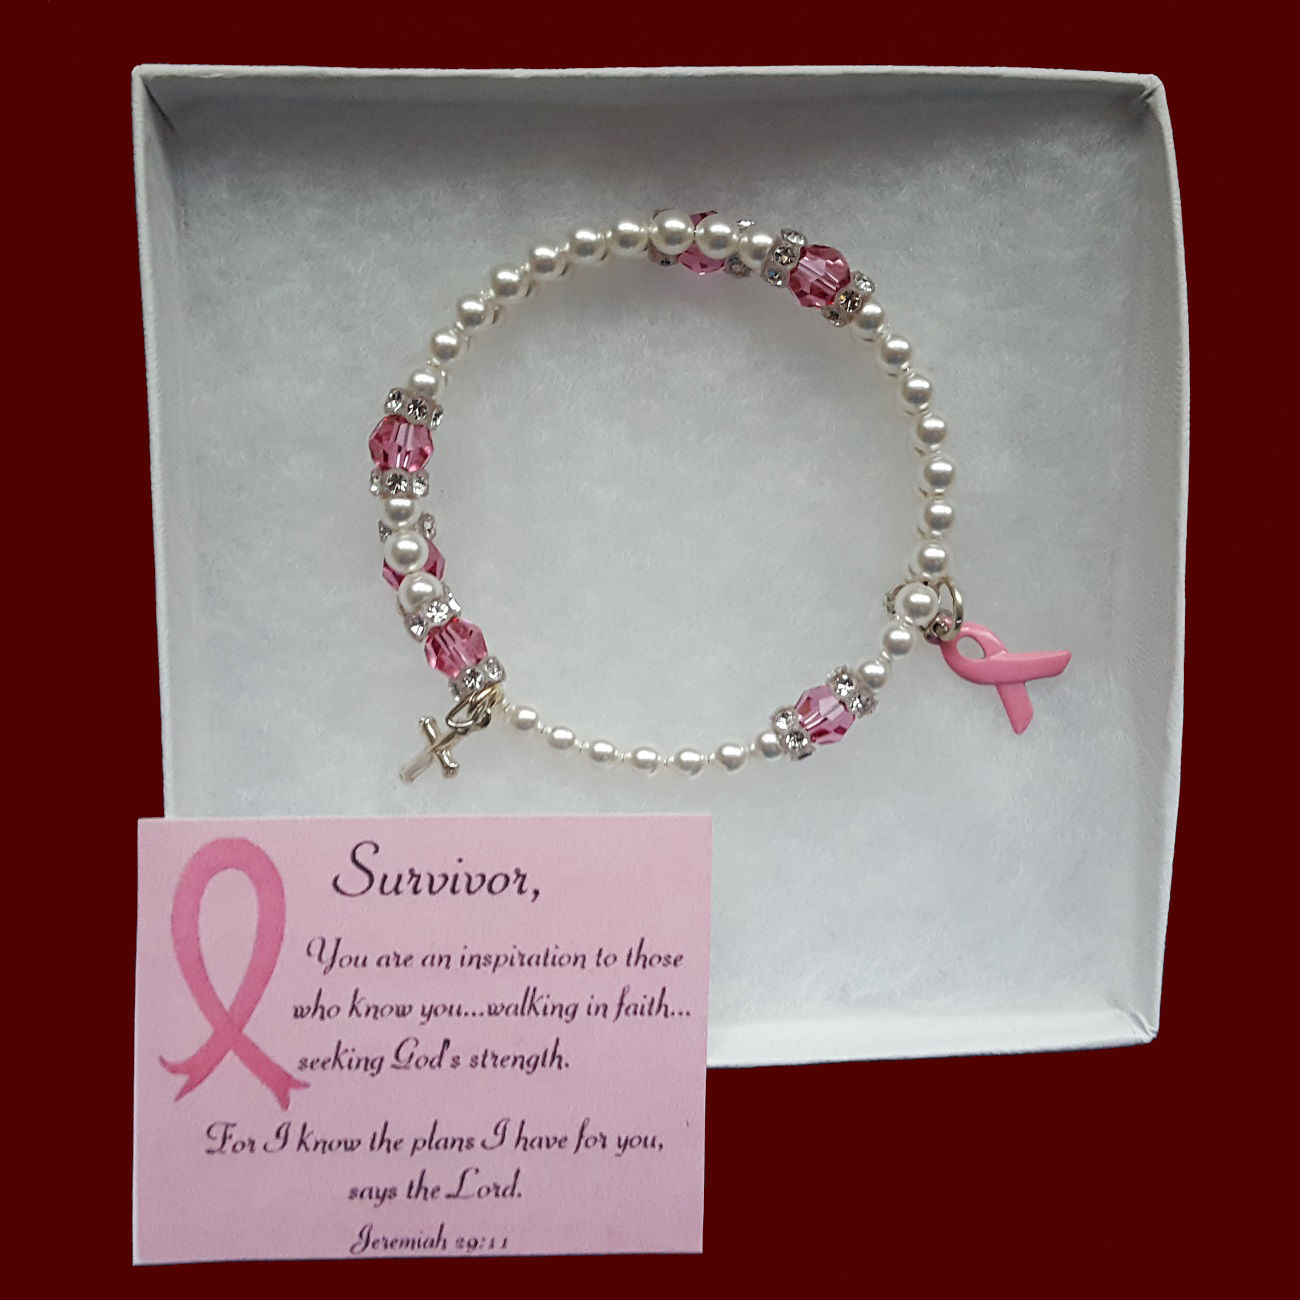 Pray For A Cure T Cancer Rosary Wrap Bracelet With Poem